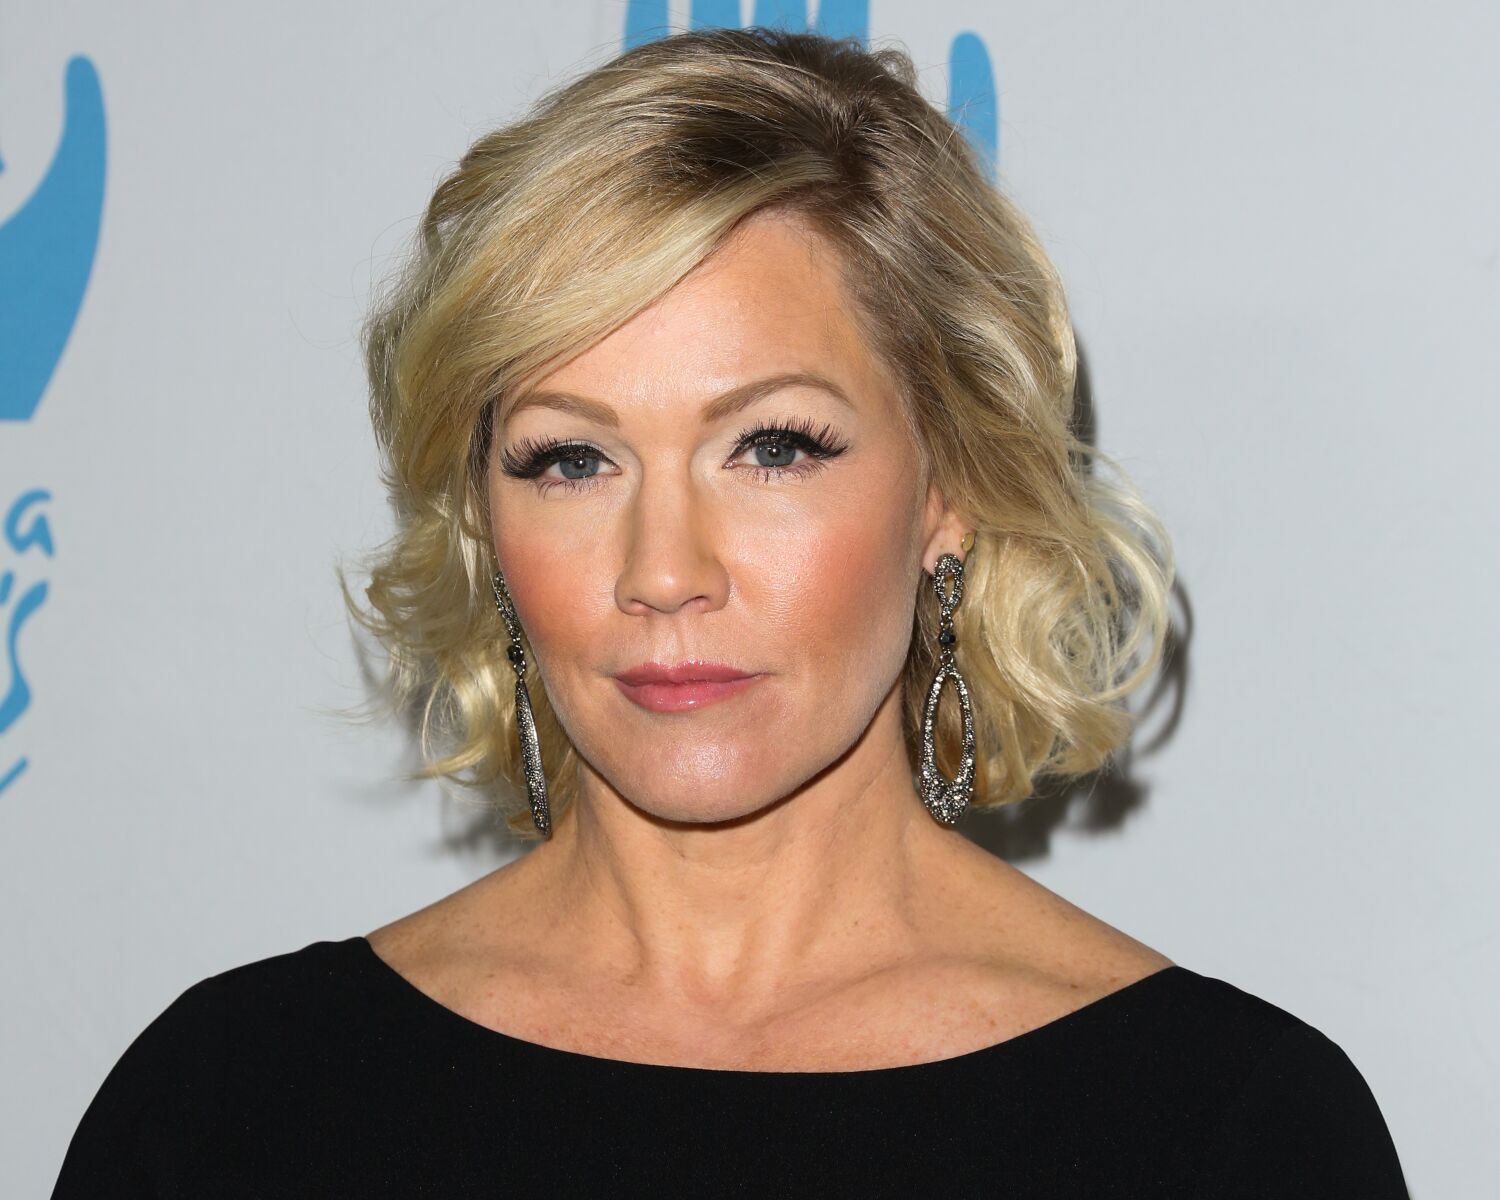 Actress Jennie Garth attends the 2nd Annual Save A Child's Heart Gala at Sony Pictures Studios on November 15, 2015 in Culver City, California | Photo: Getty Images